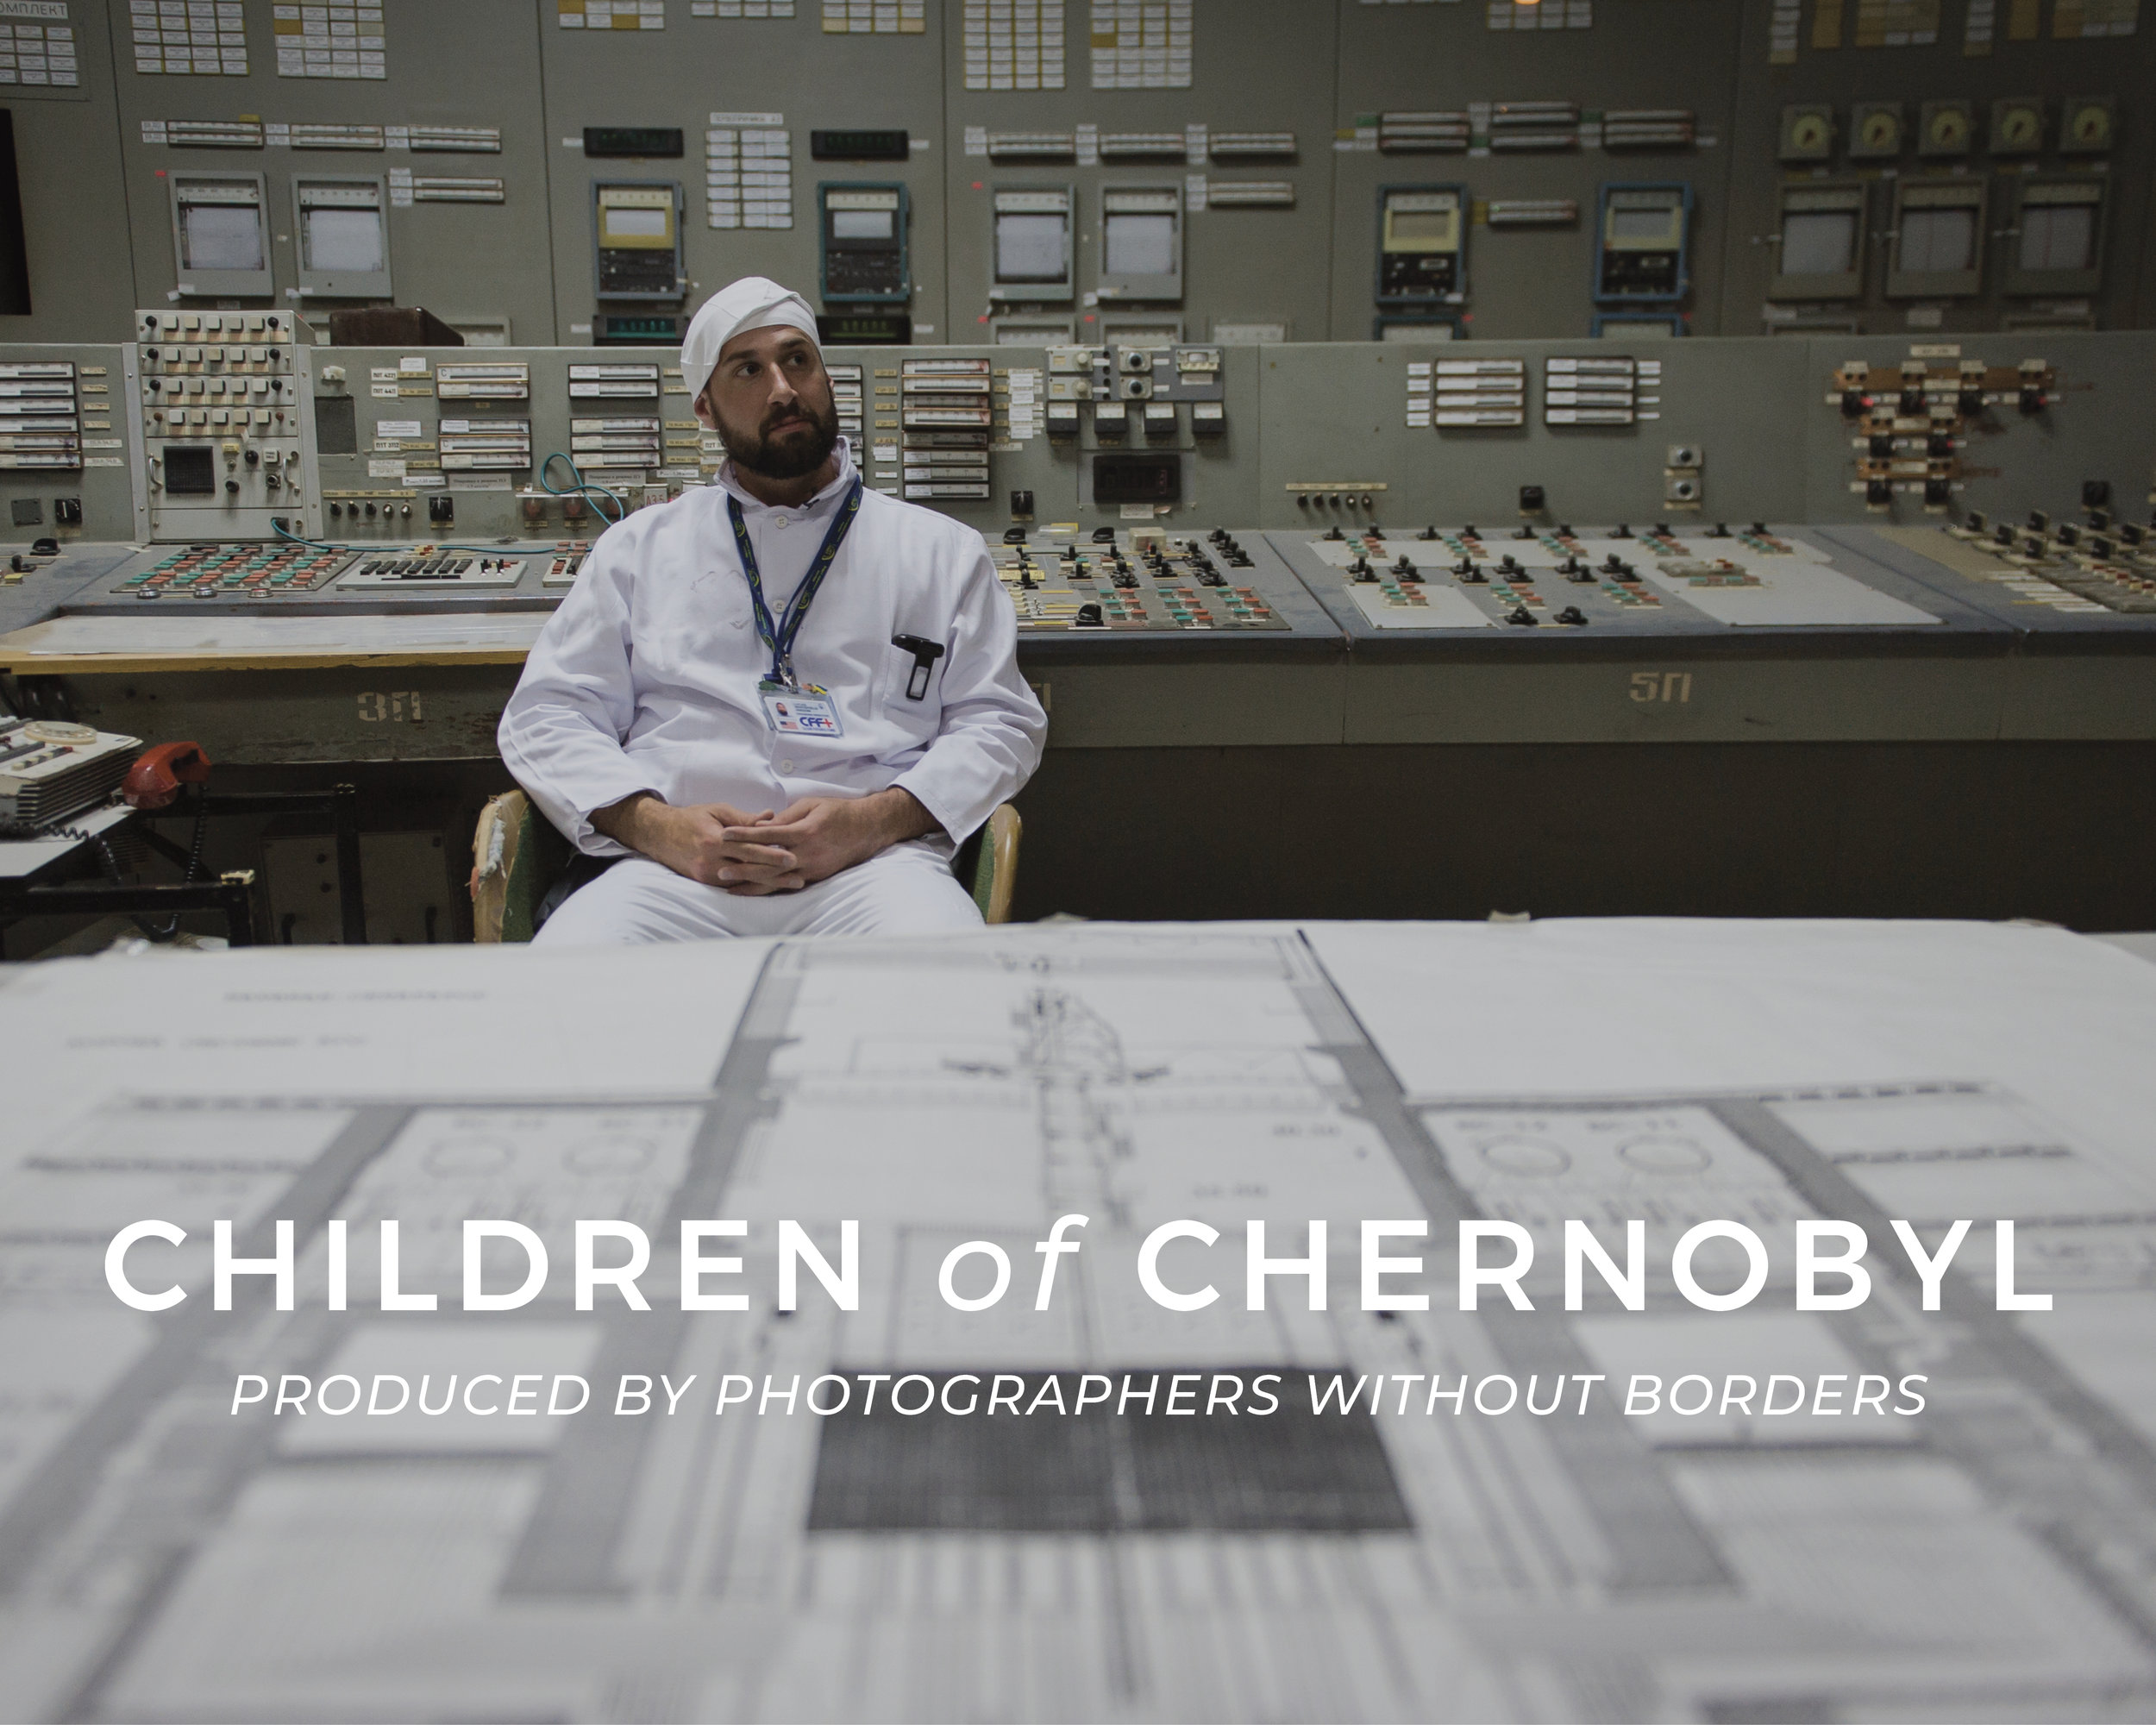 Children of Chernobyl_Post3.jpg